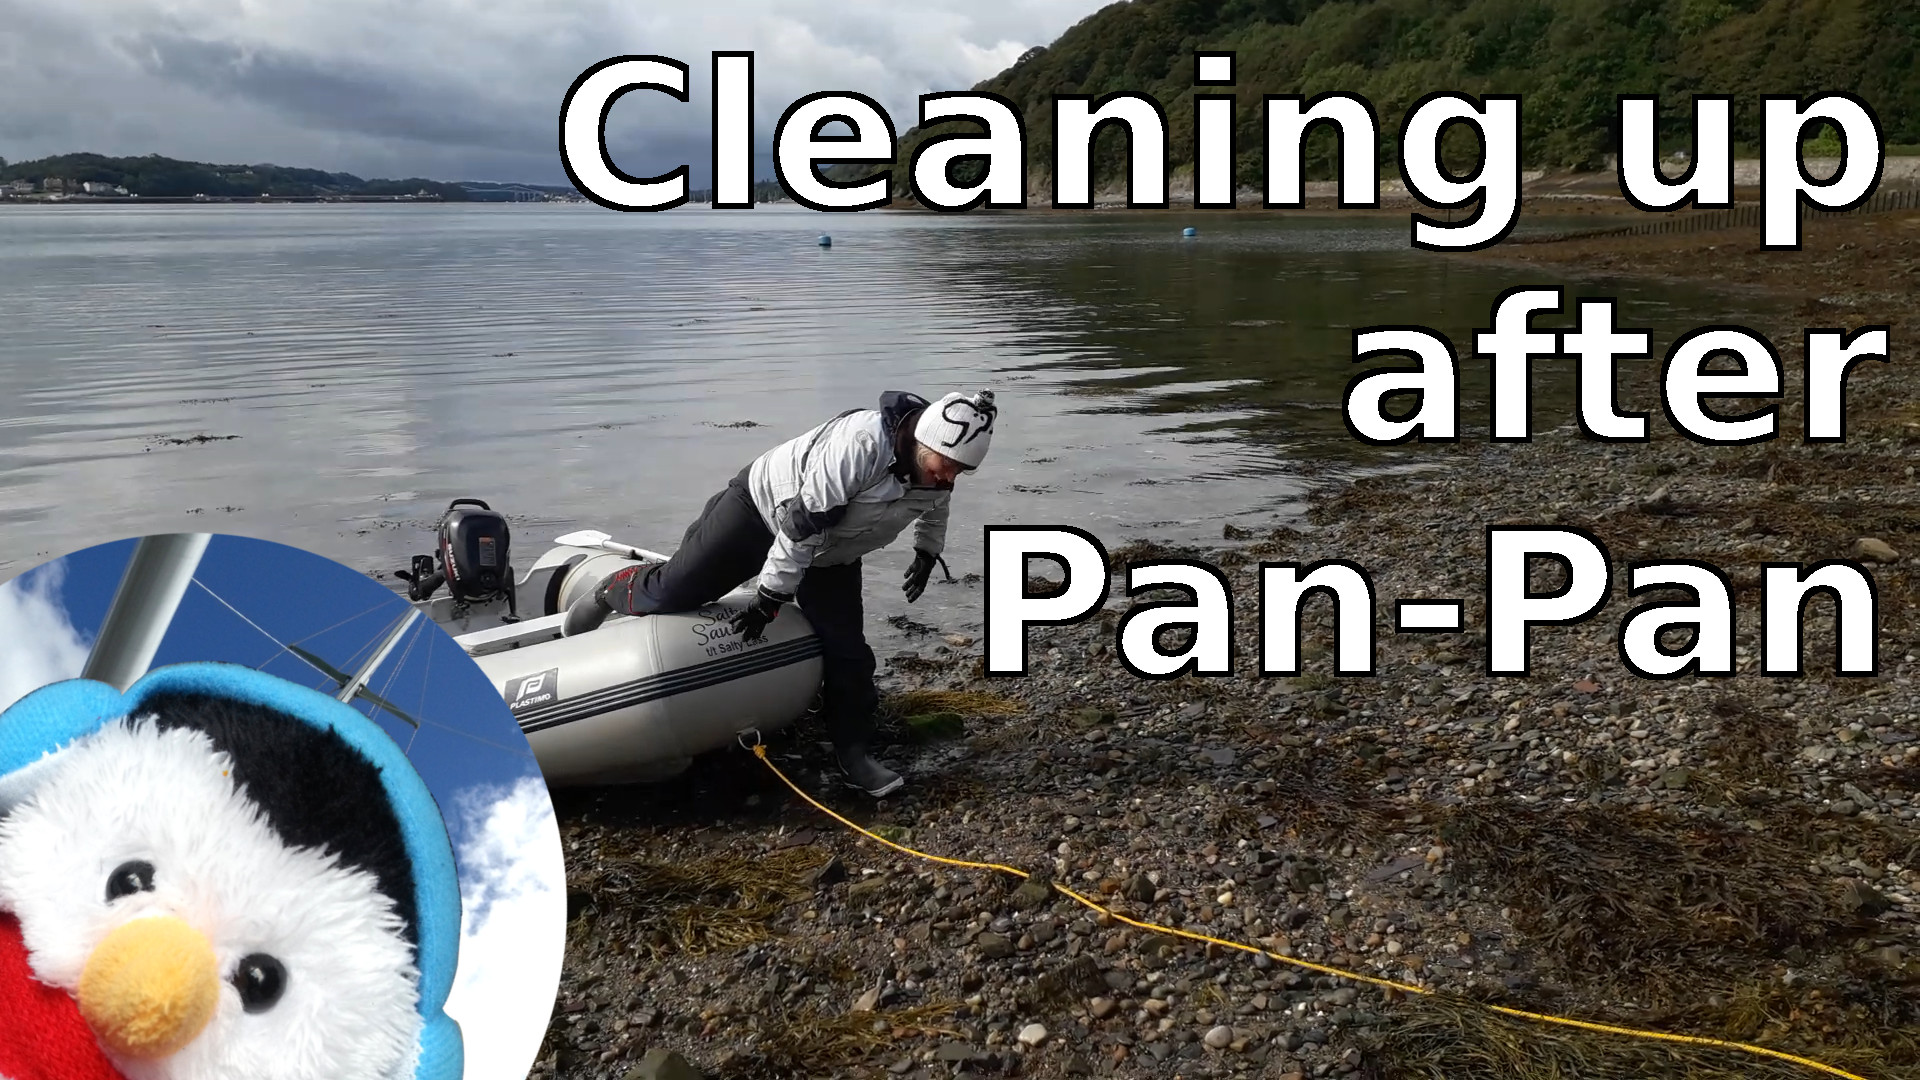 Watch our 'Clearing up after Pan Pan' video and add comments etc.